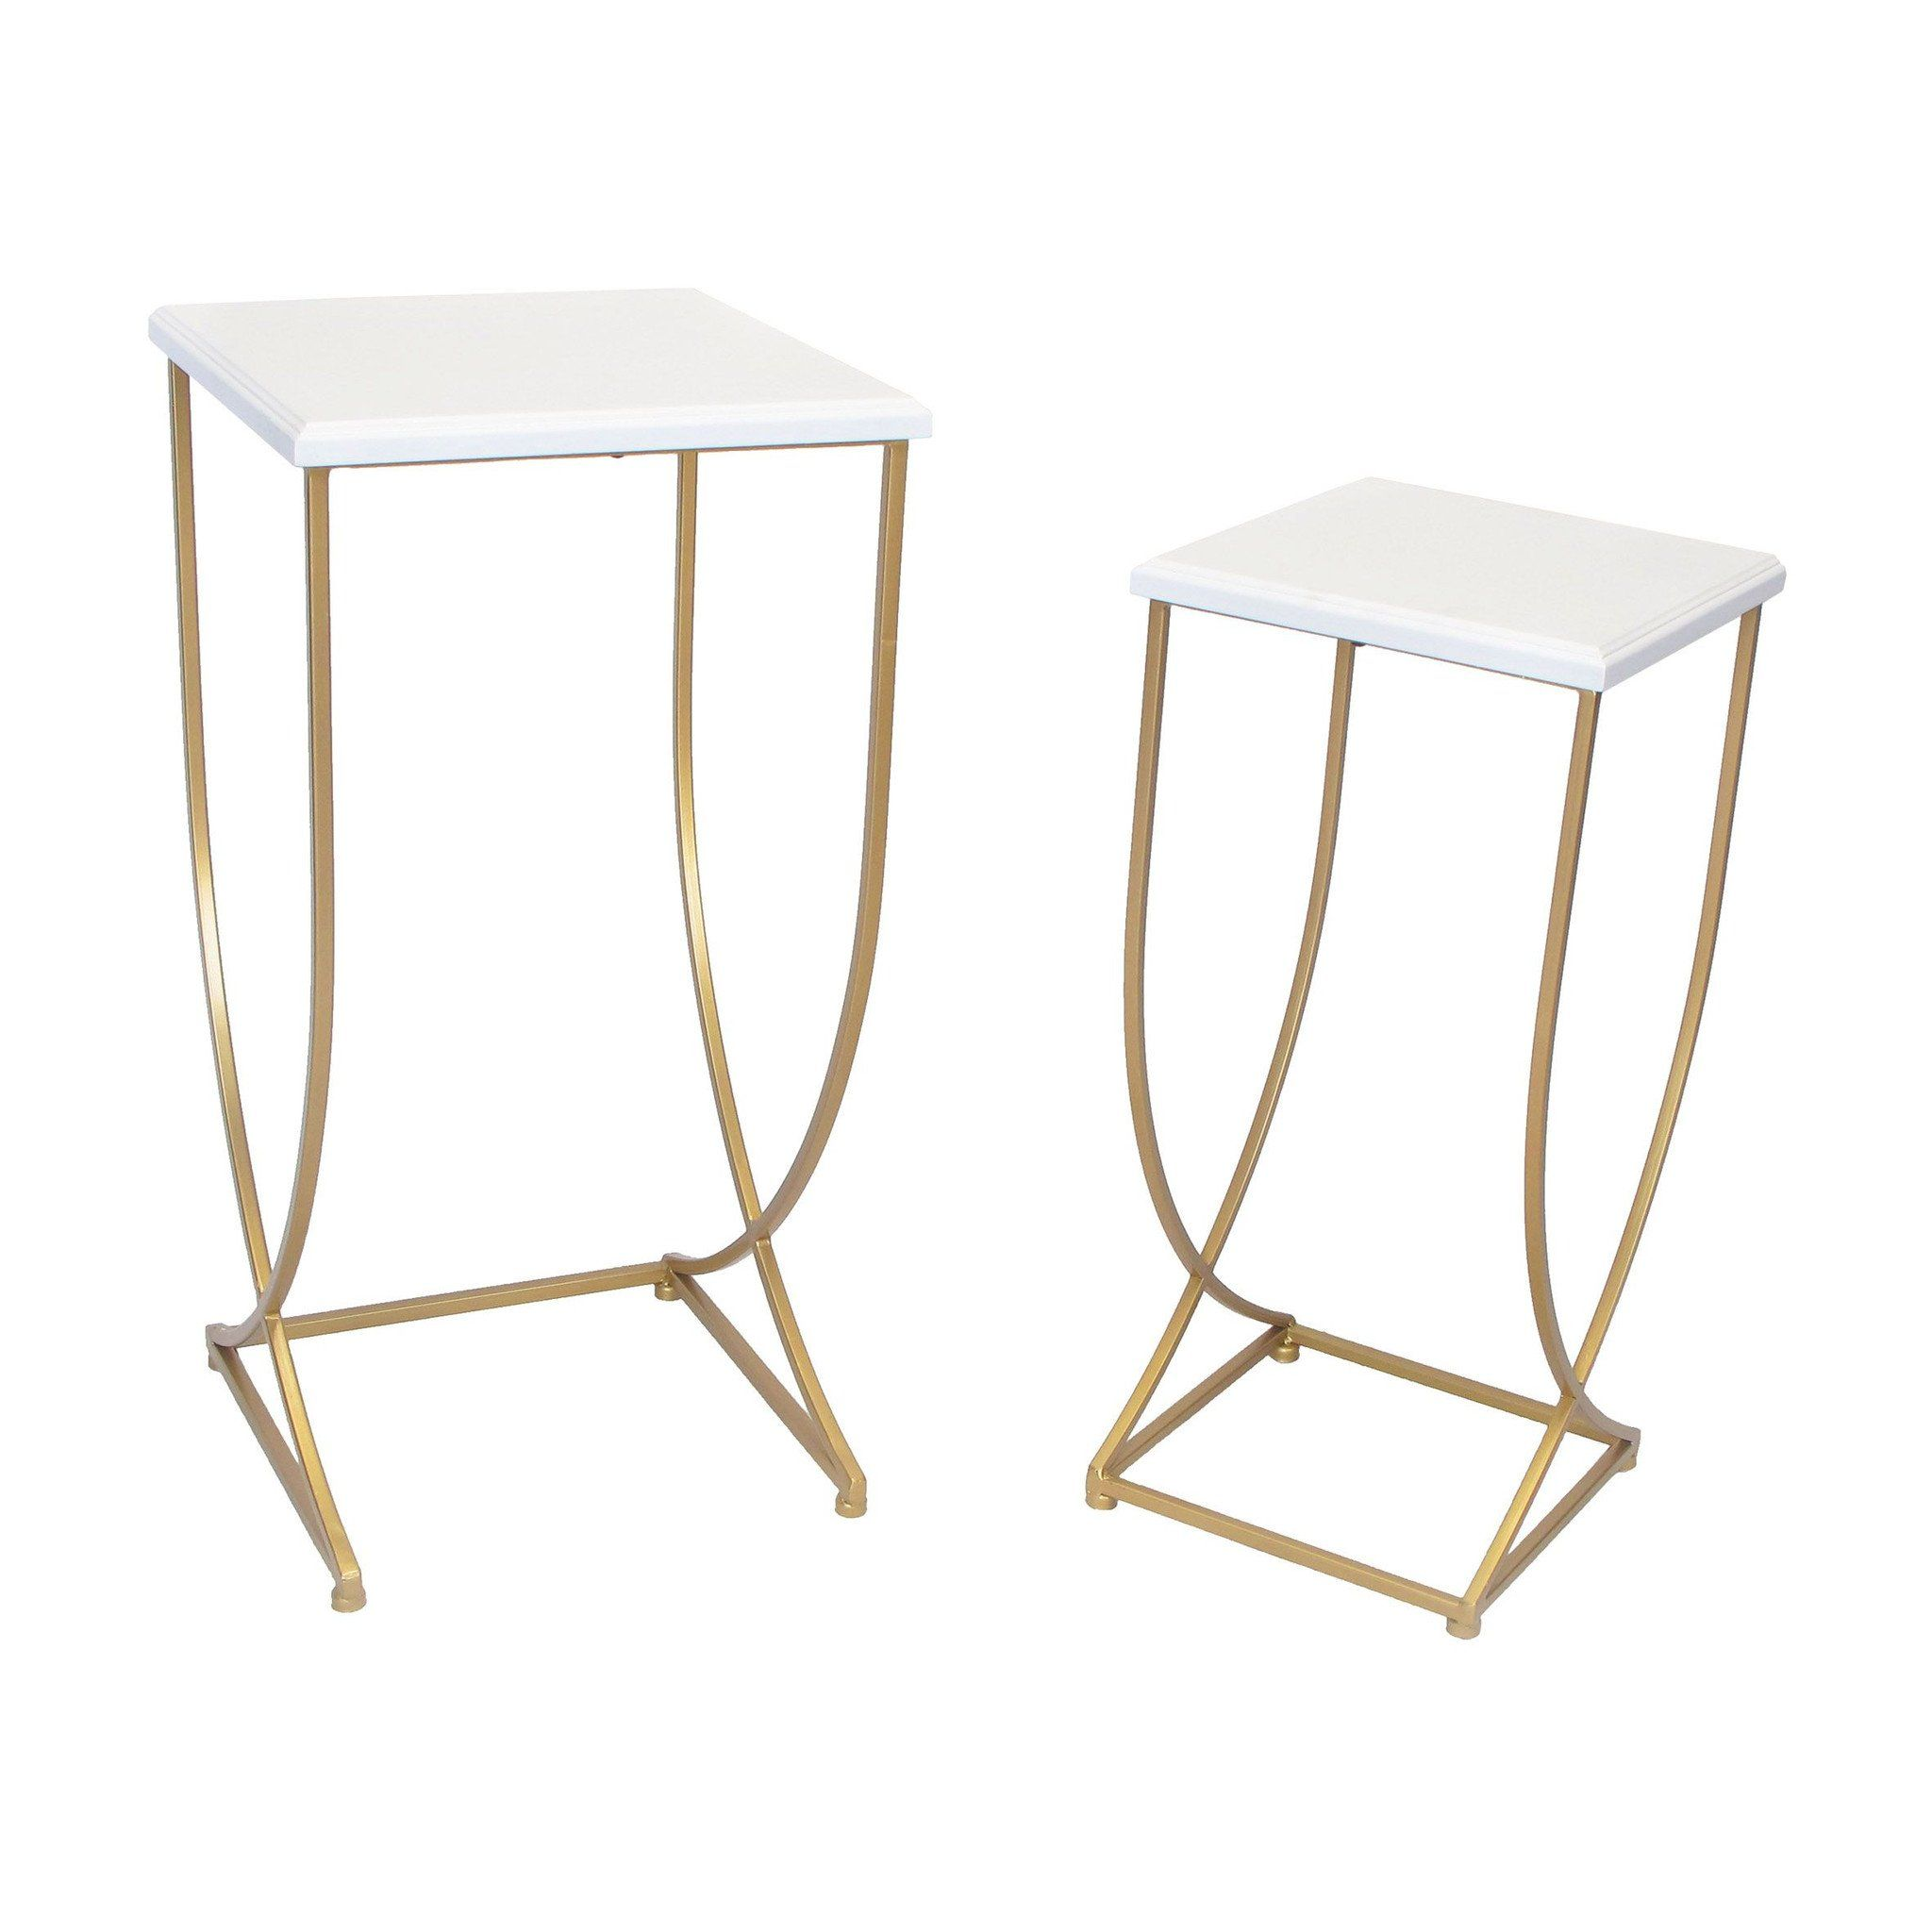 gold metal tall nesting side table set with white top everything accent farm chairs best nightstands cabinet sofa tray end colorful ikea small folding furniture feet dining chair